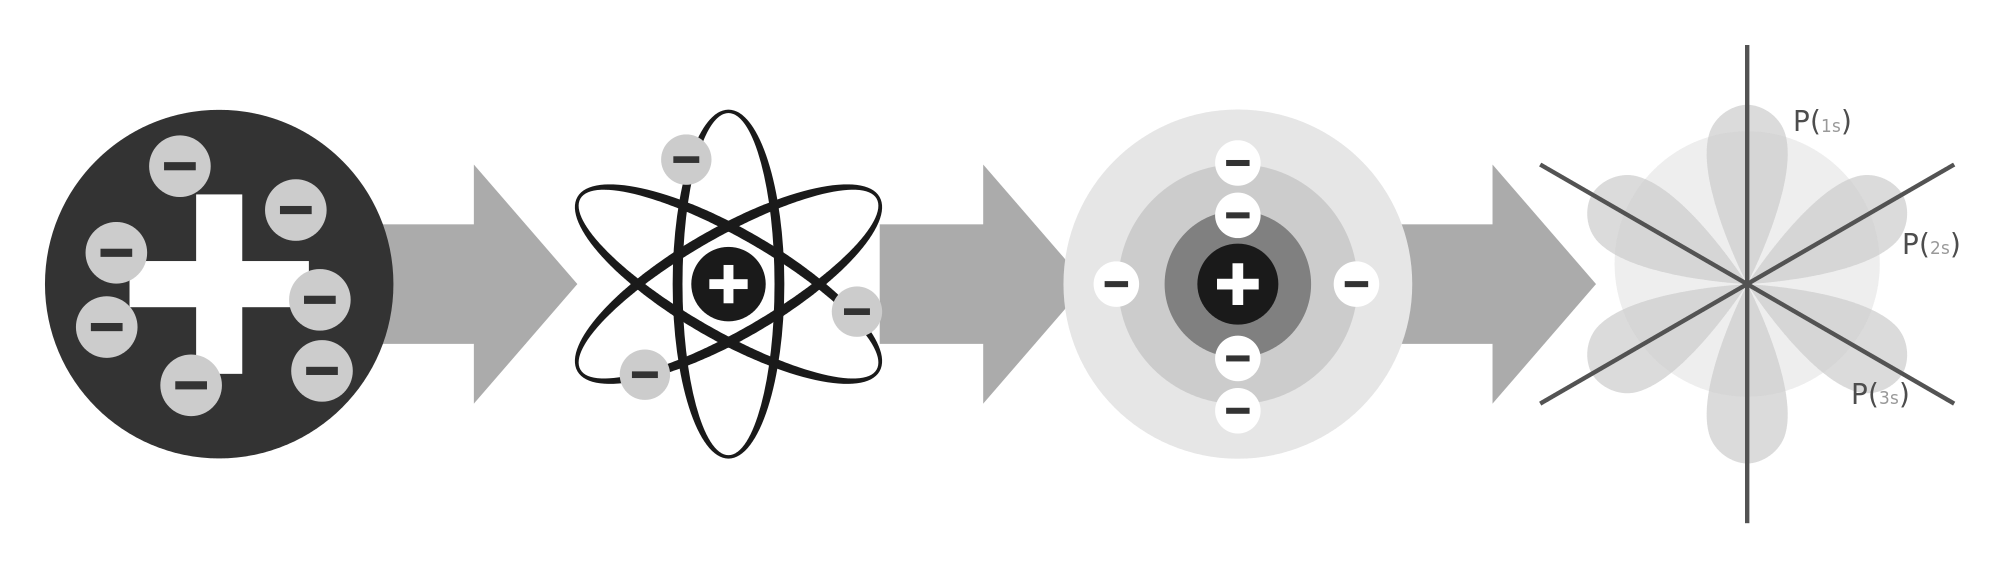 vector stock File of atomic models. Evolution vector infographic